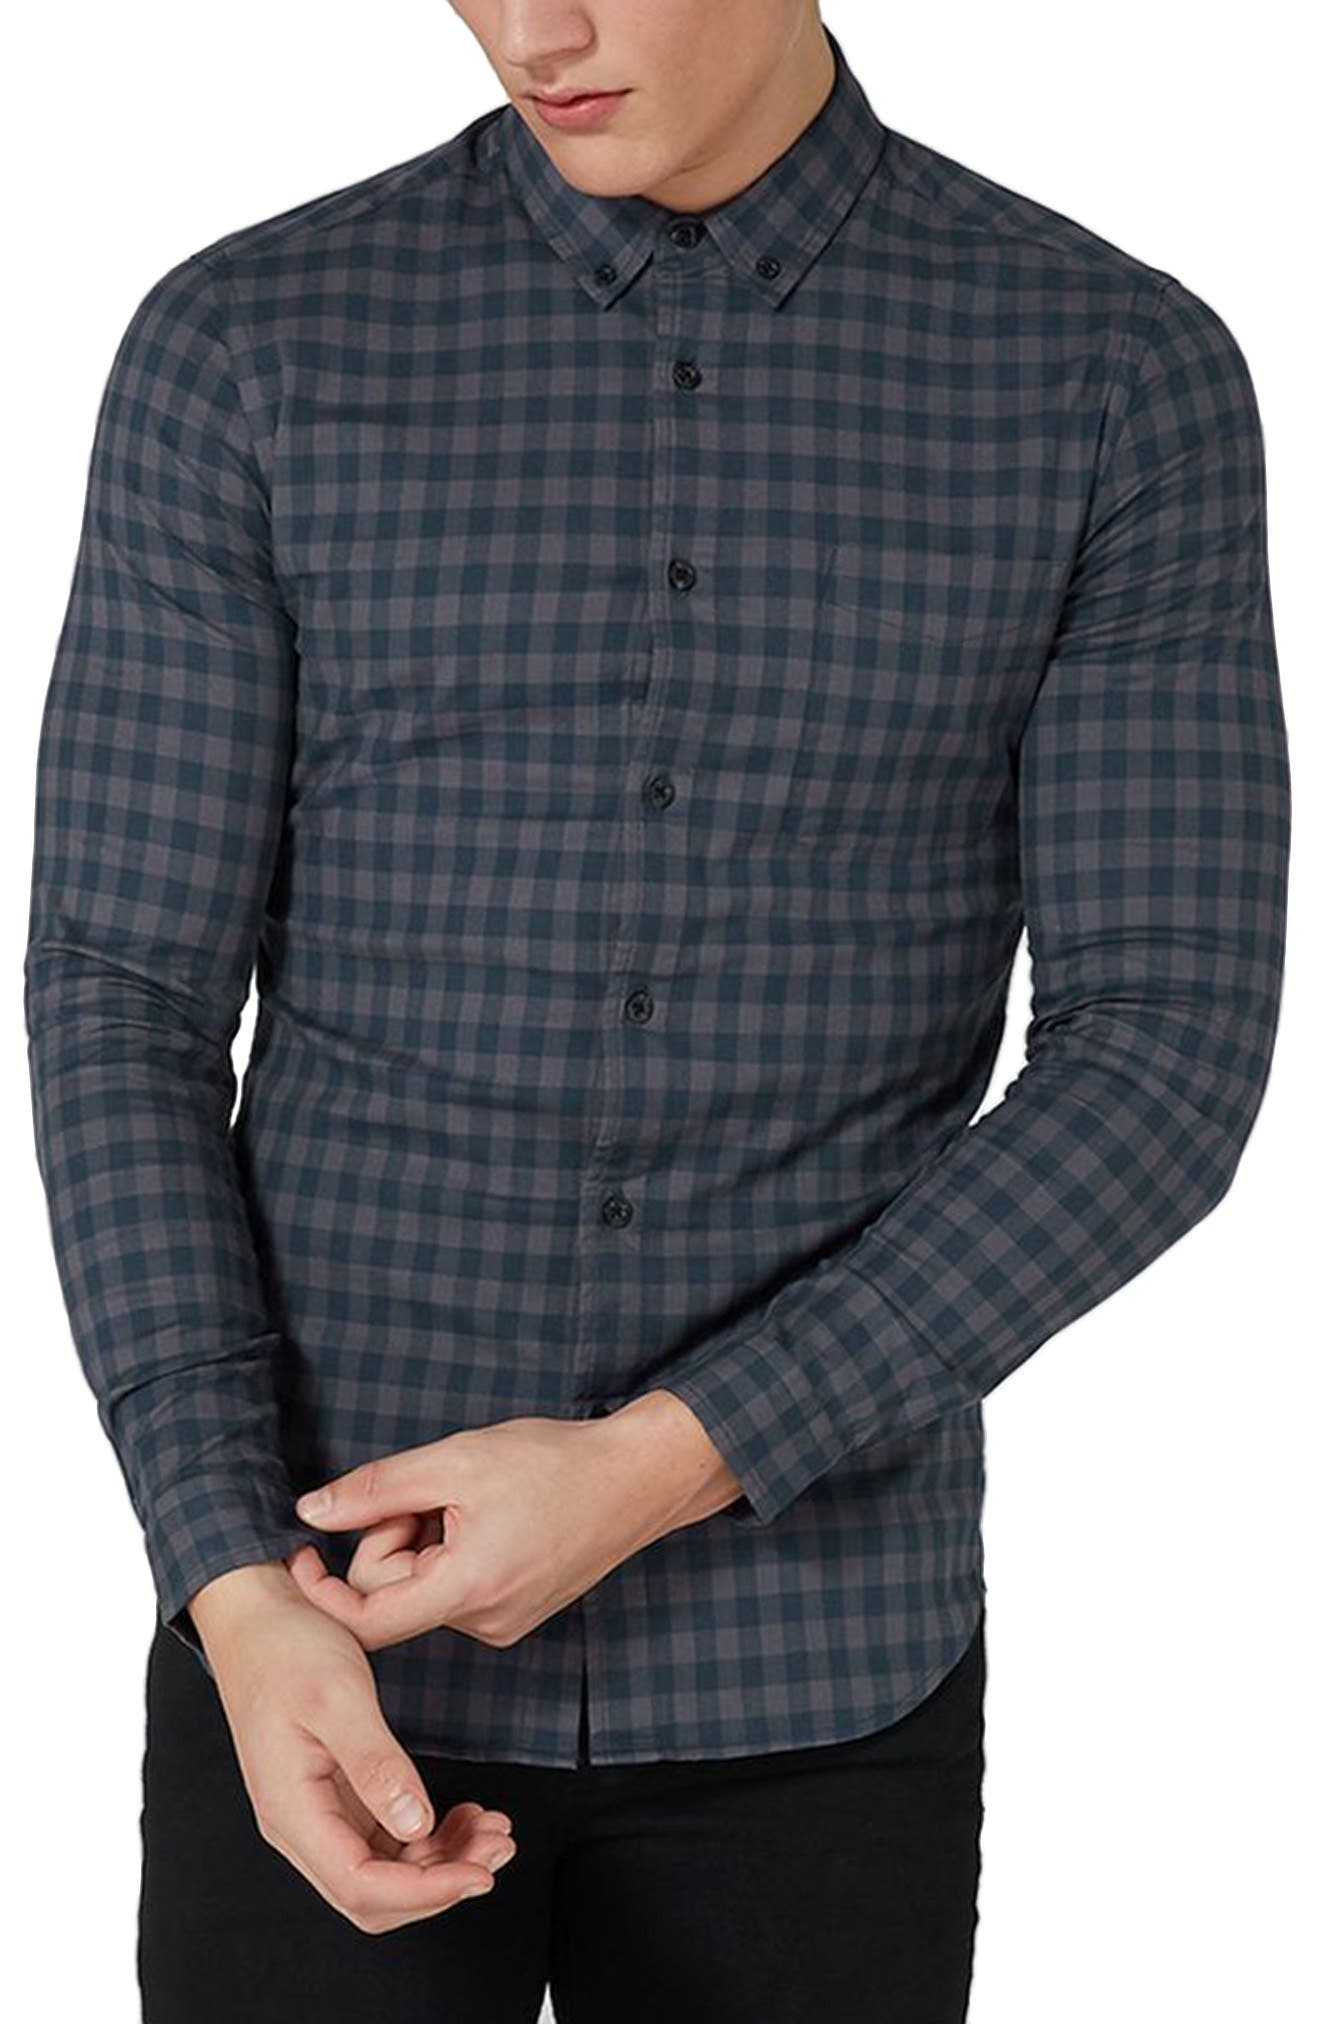 Alternate Image 1 Selected - Topman Muscle Fit Gingham Shirt